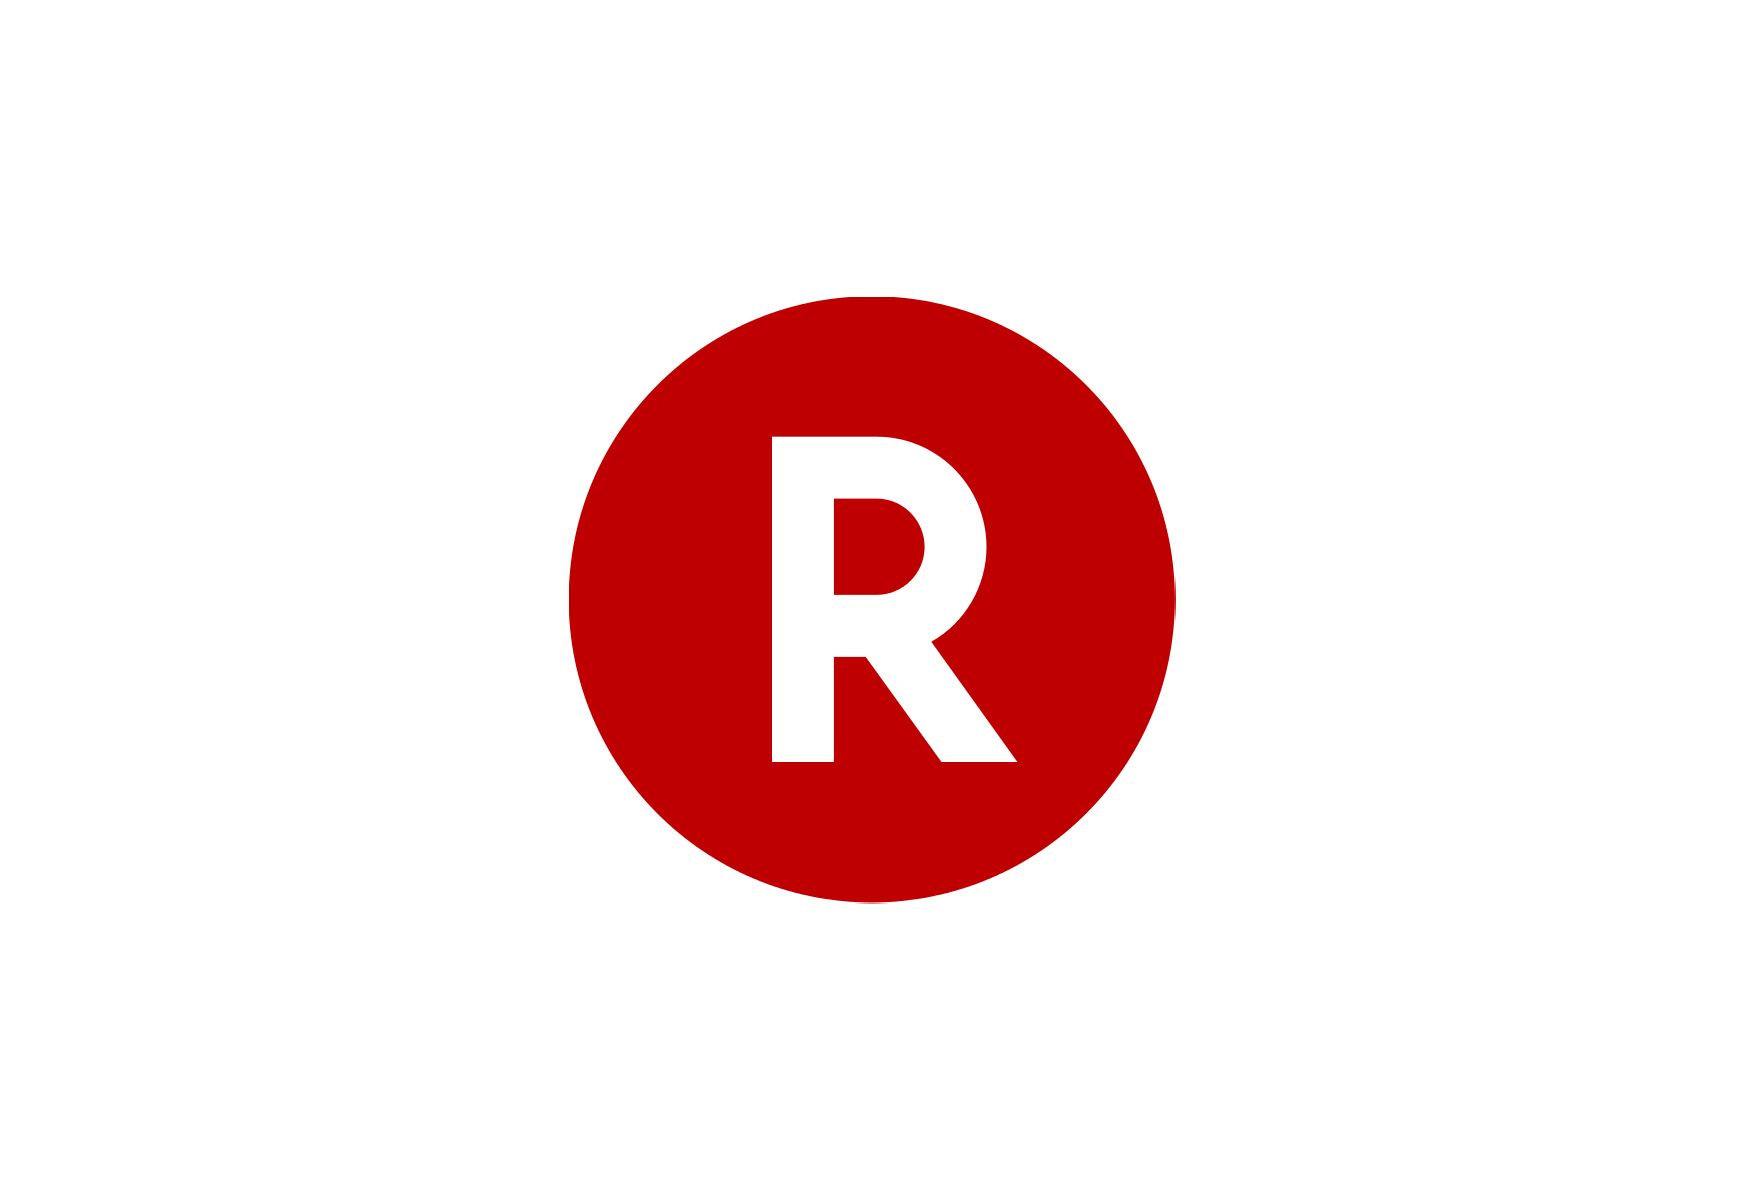 Rakuten logo. Rakuten_logo_02.png - Rakuten Logo Vector PNG